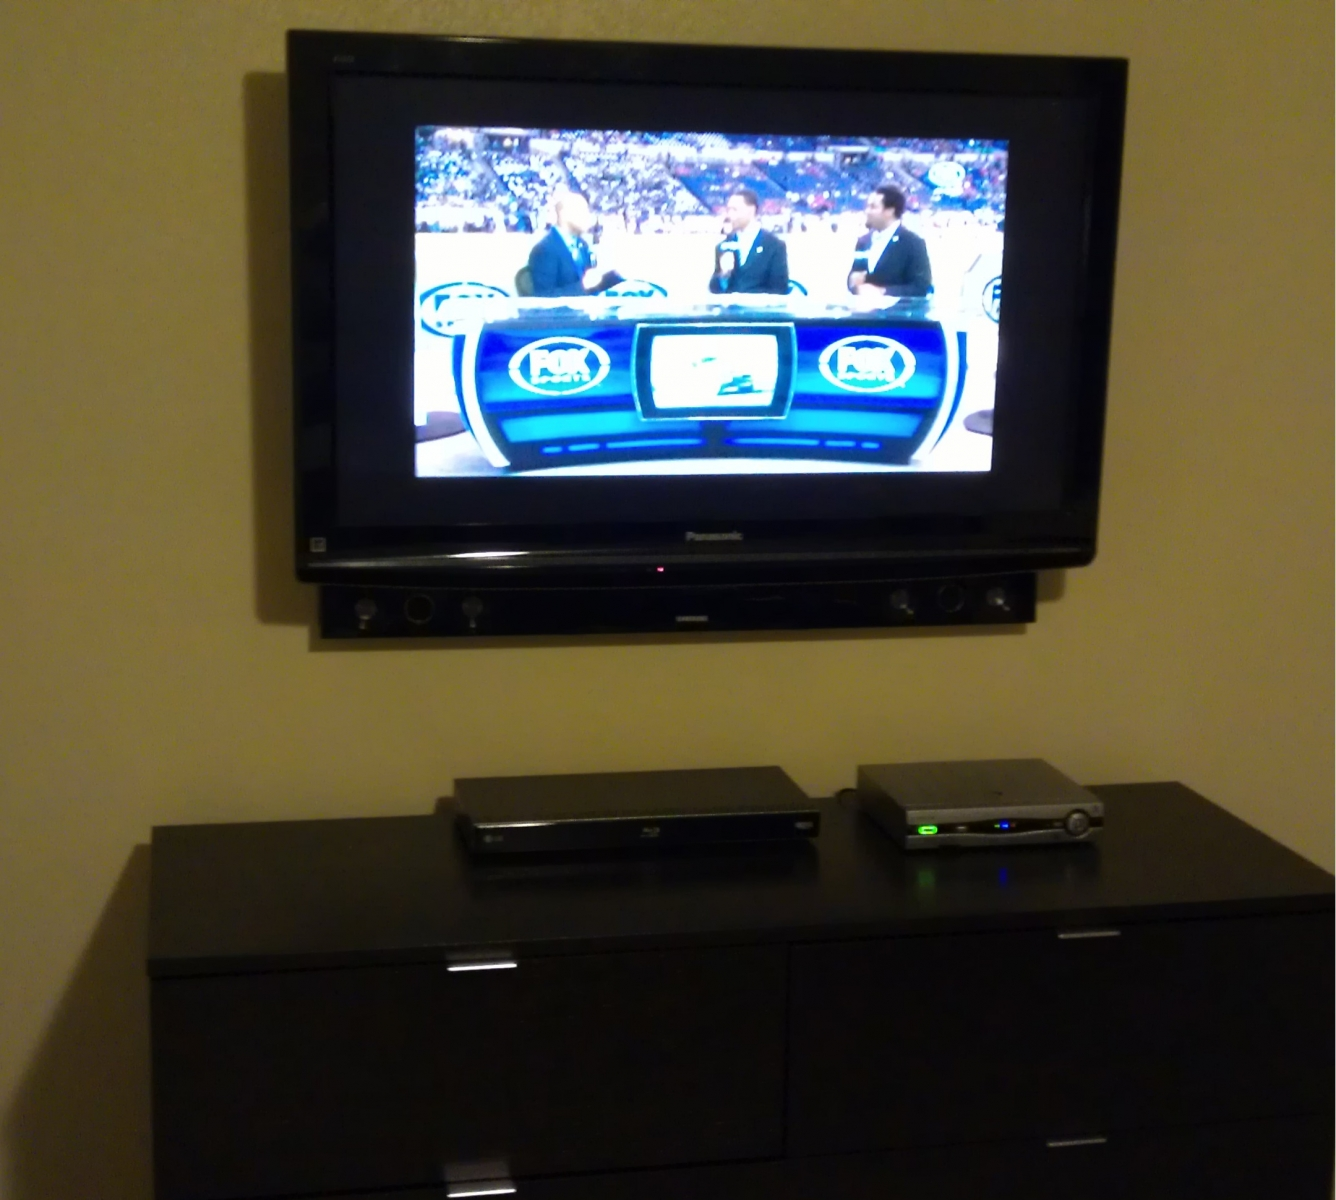 Wall Led Tv : Wall Mounted Led Tv With Sound Bar And Wall Mounted Dvd Blu Ray  Apps ...